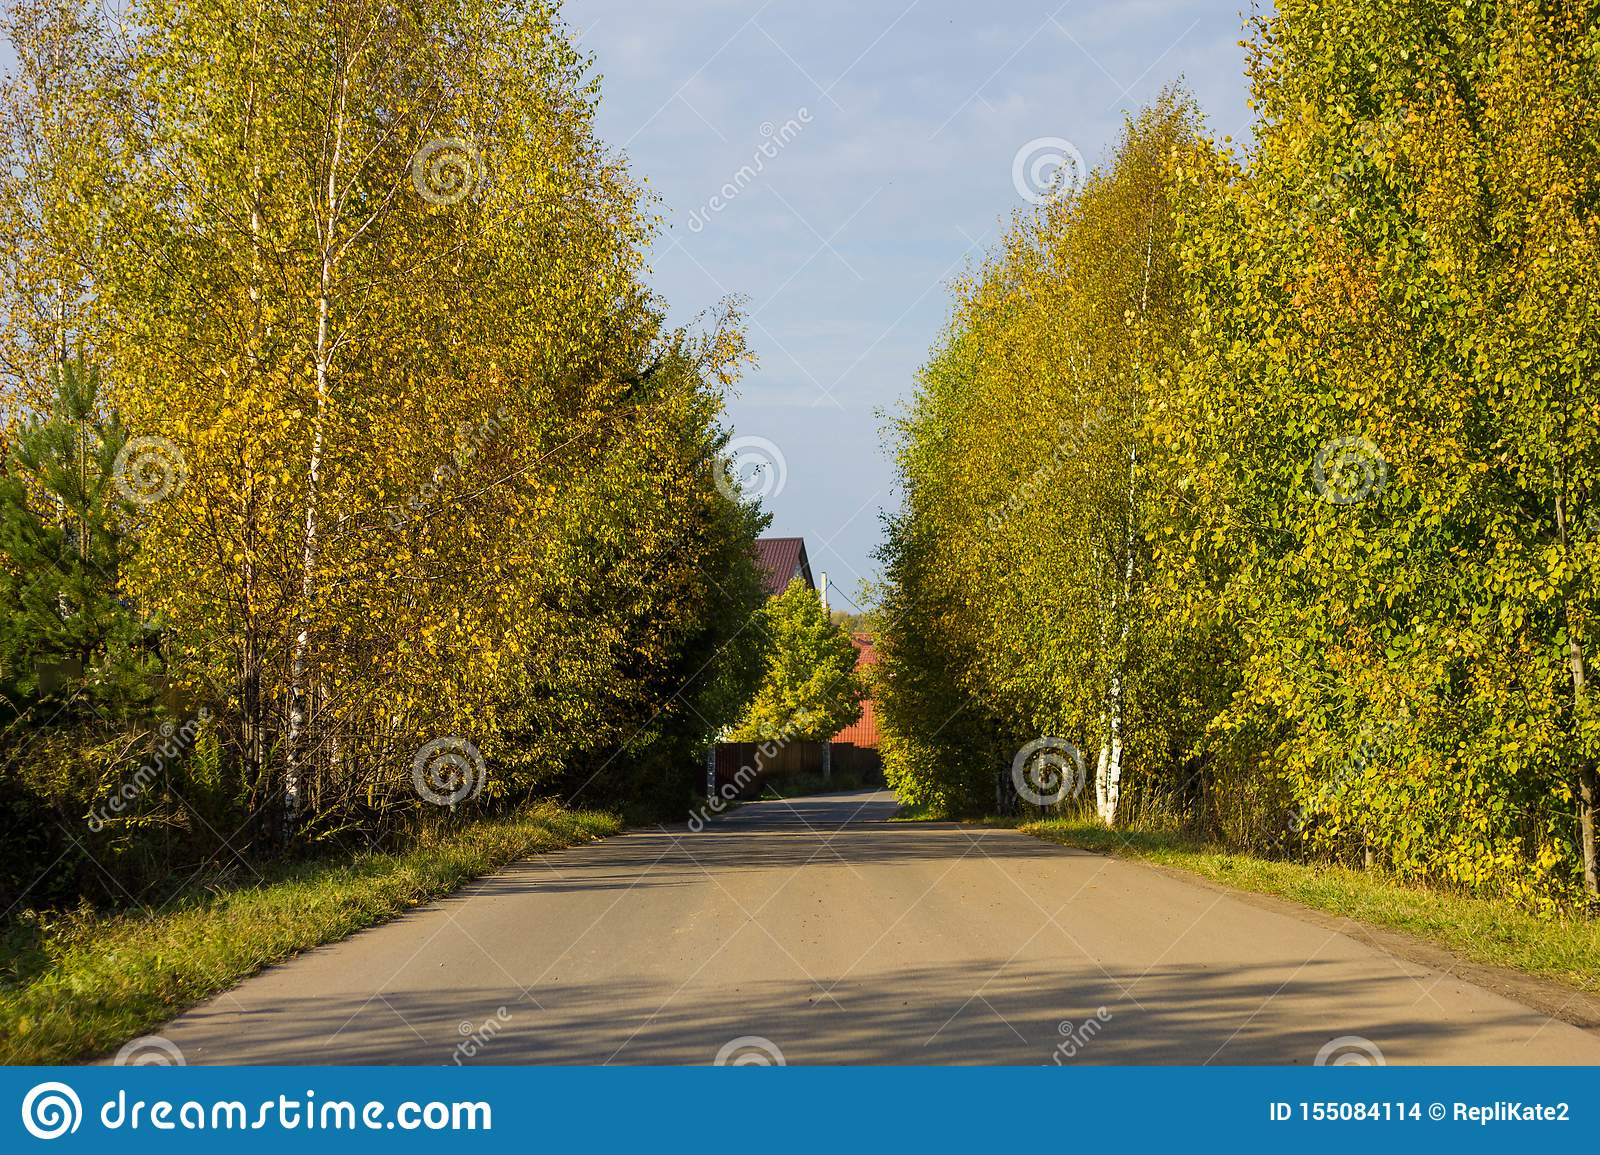 Autumn forest road with colorful yellow and orange trees against a clear sky on a Sunny day. Colorful landscape of Russian nature